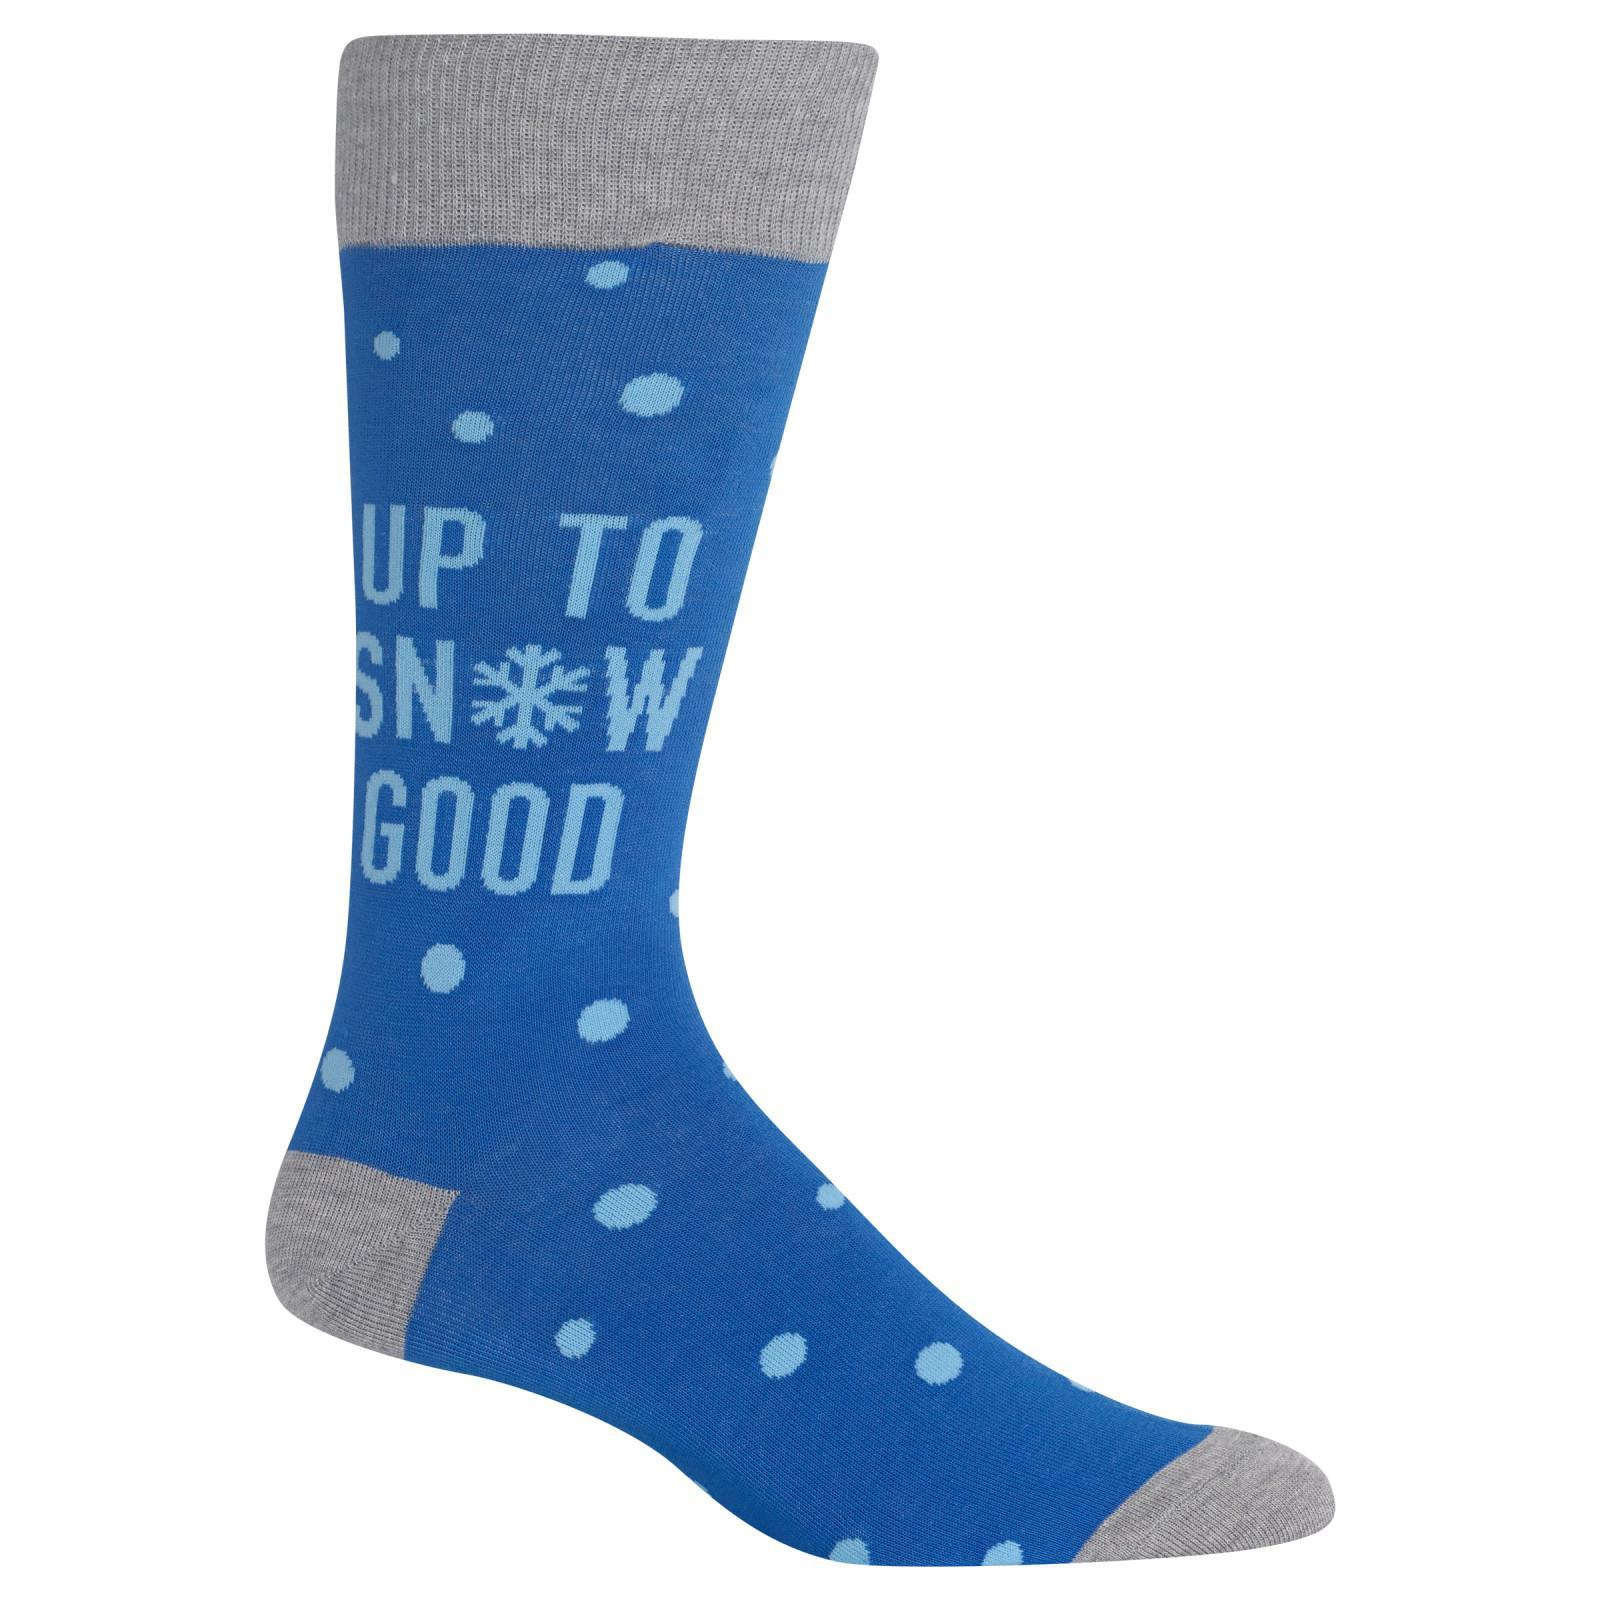 Up to Snow Good Socks Men's Crew Sock Blue